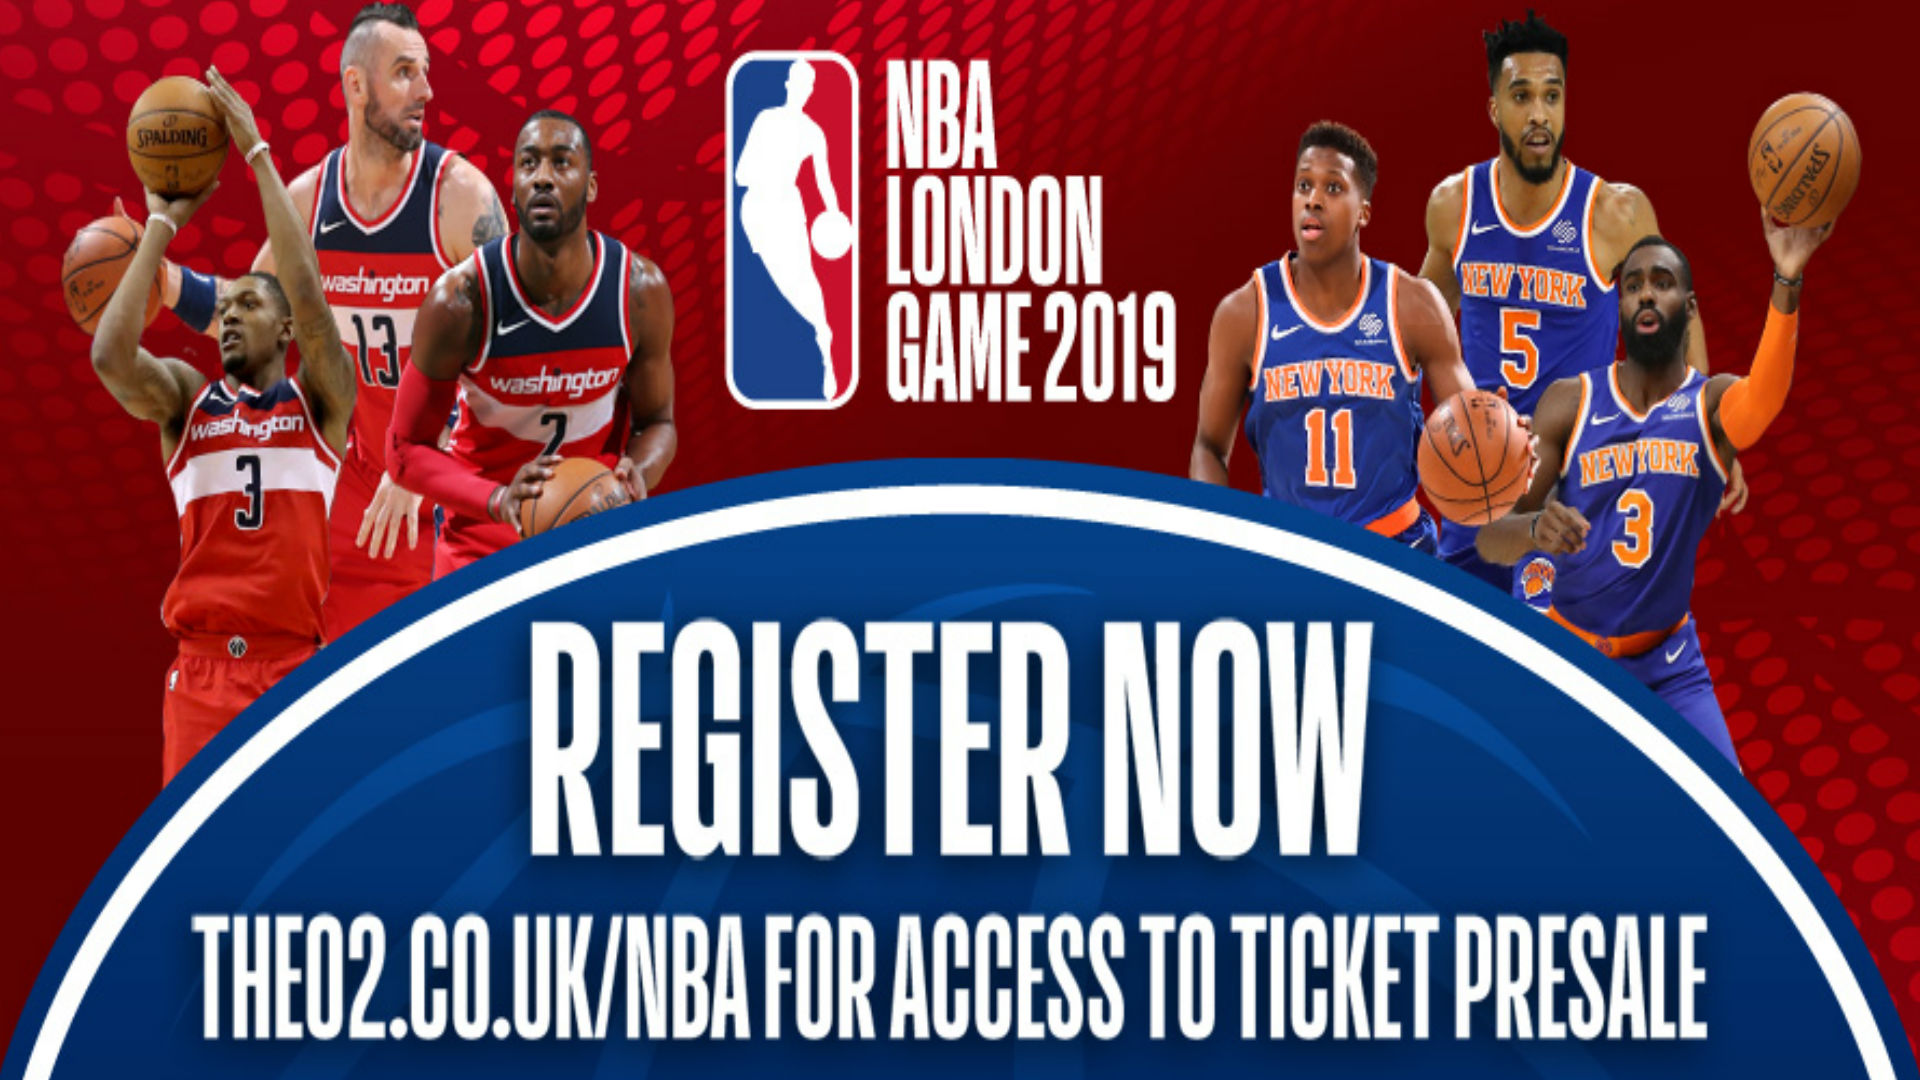 Ticket registration advertisment for the NBA London Game 2019 at The O2 between the New York Knicks and Washington Wizards. Image courtesy of NBA